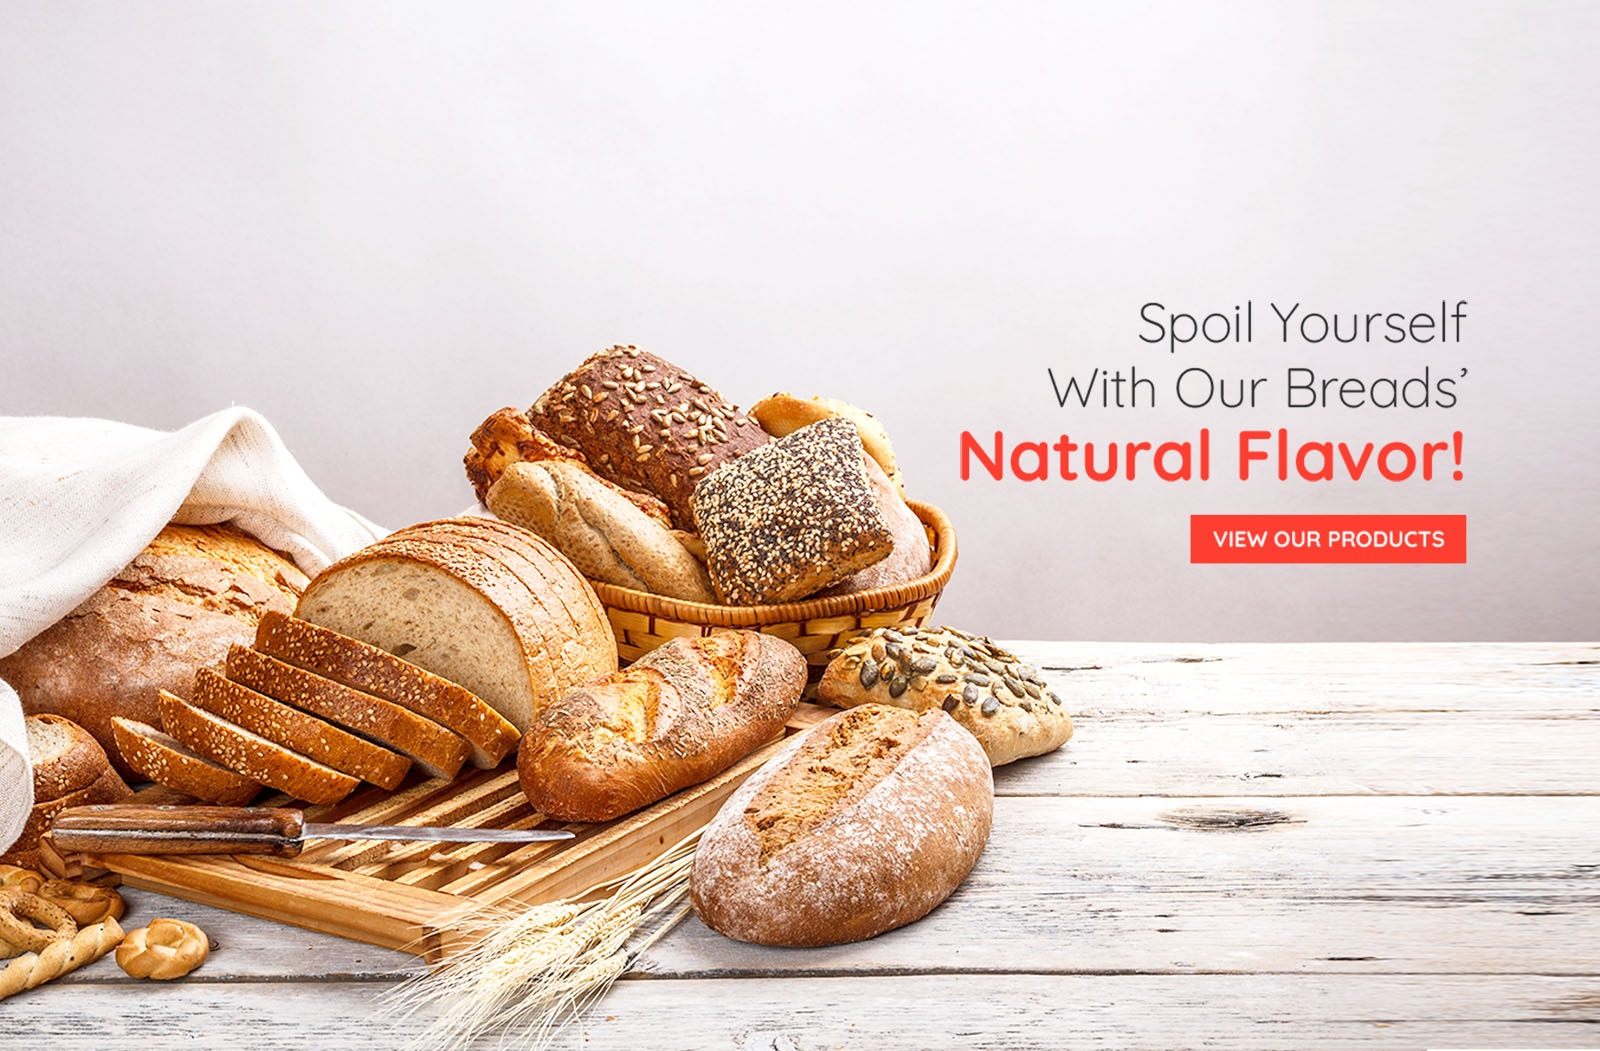 Spoil Yourself With Our Breads Natural Flavor